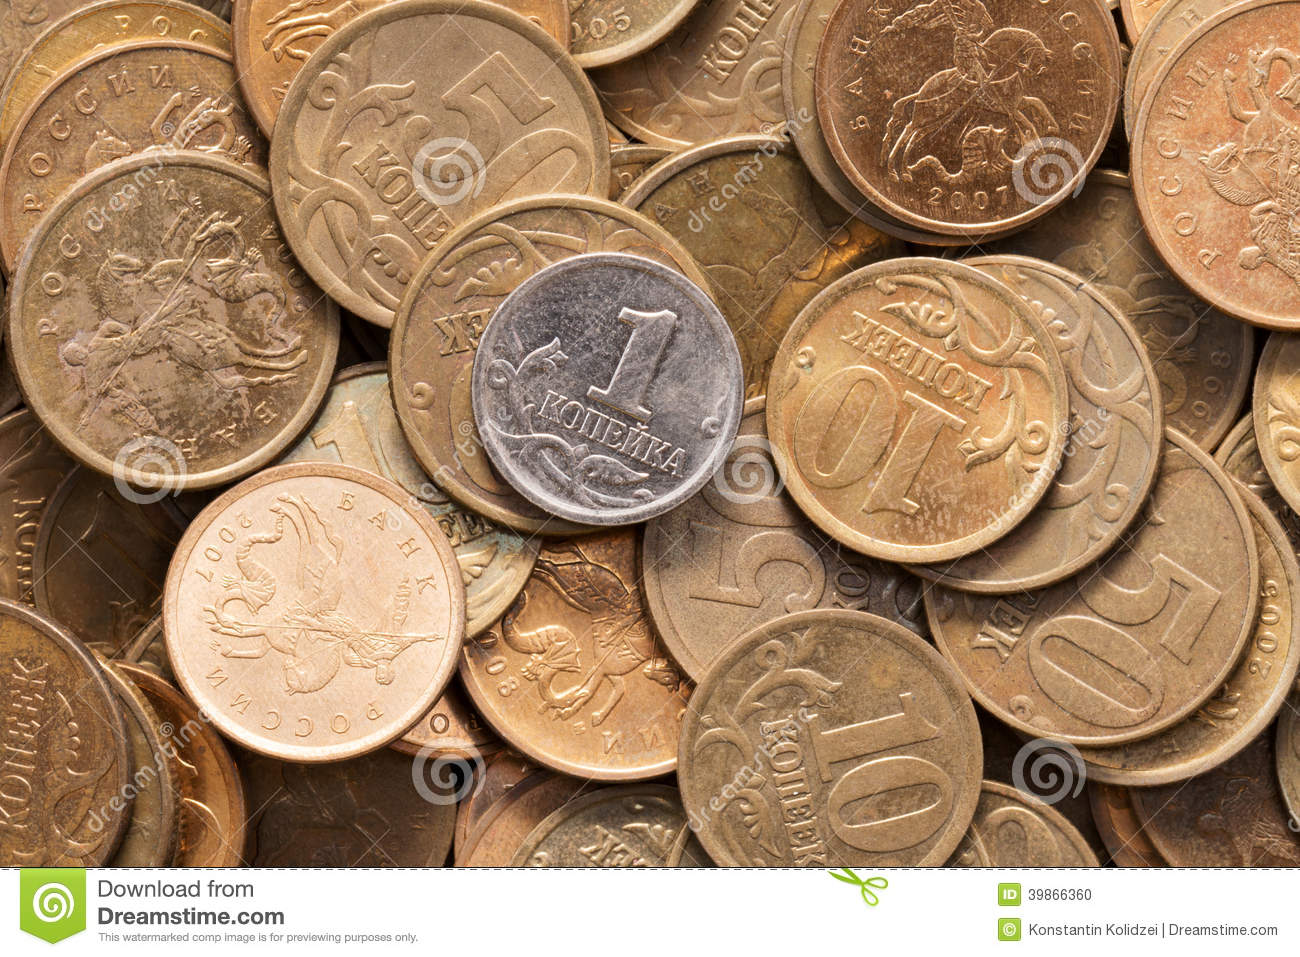 Coins of the Russian Federation. Photo taken on: April 16th, 2014.